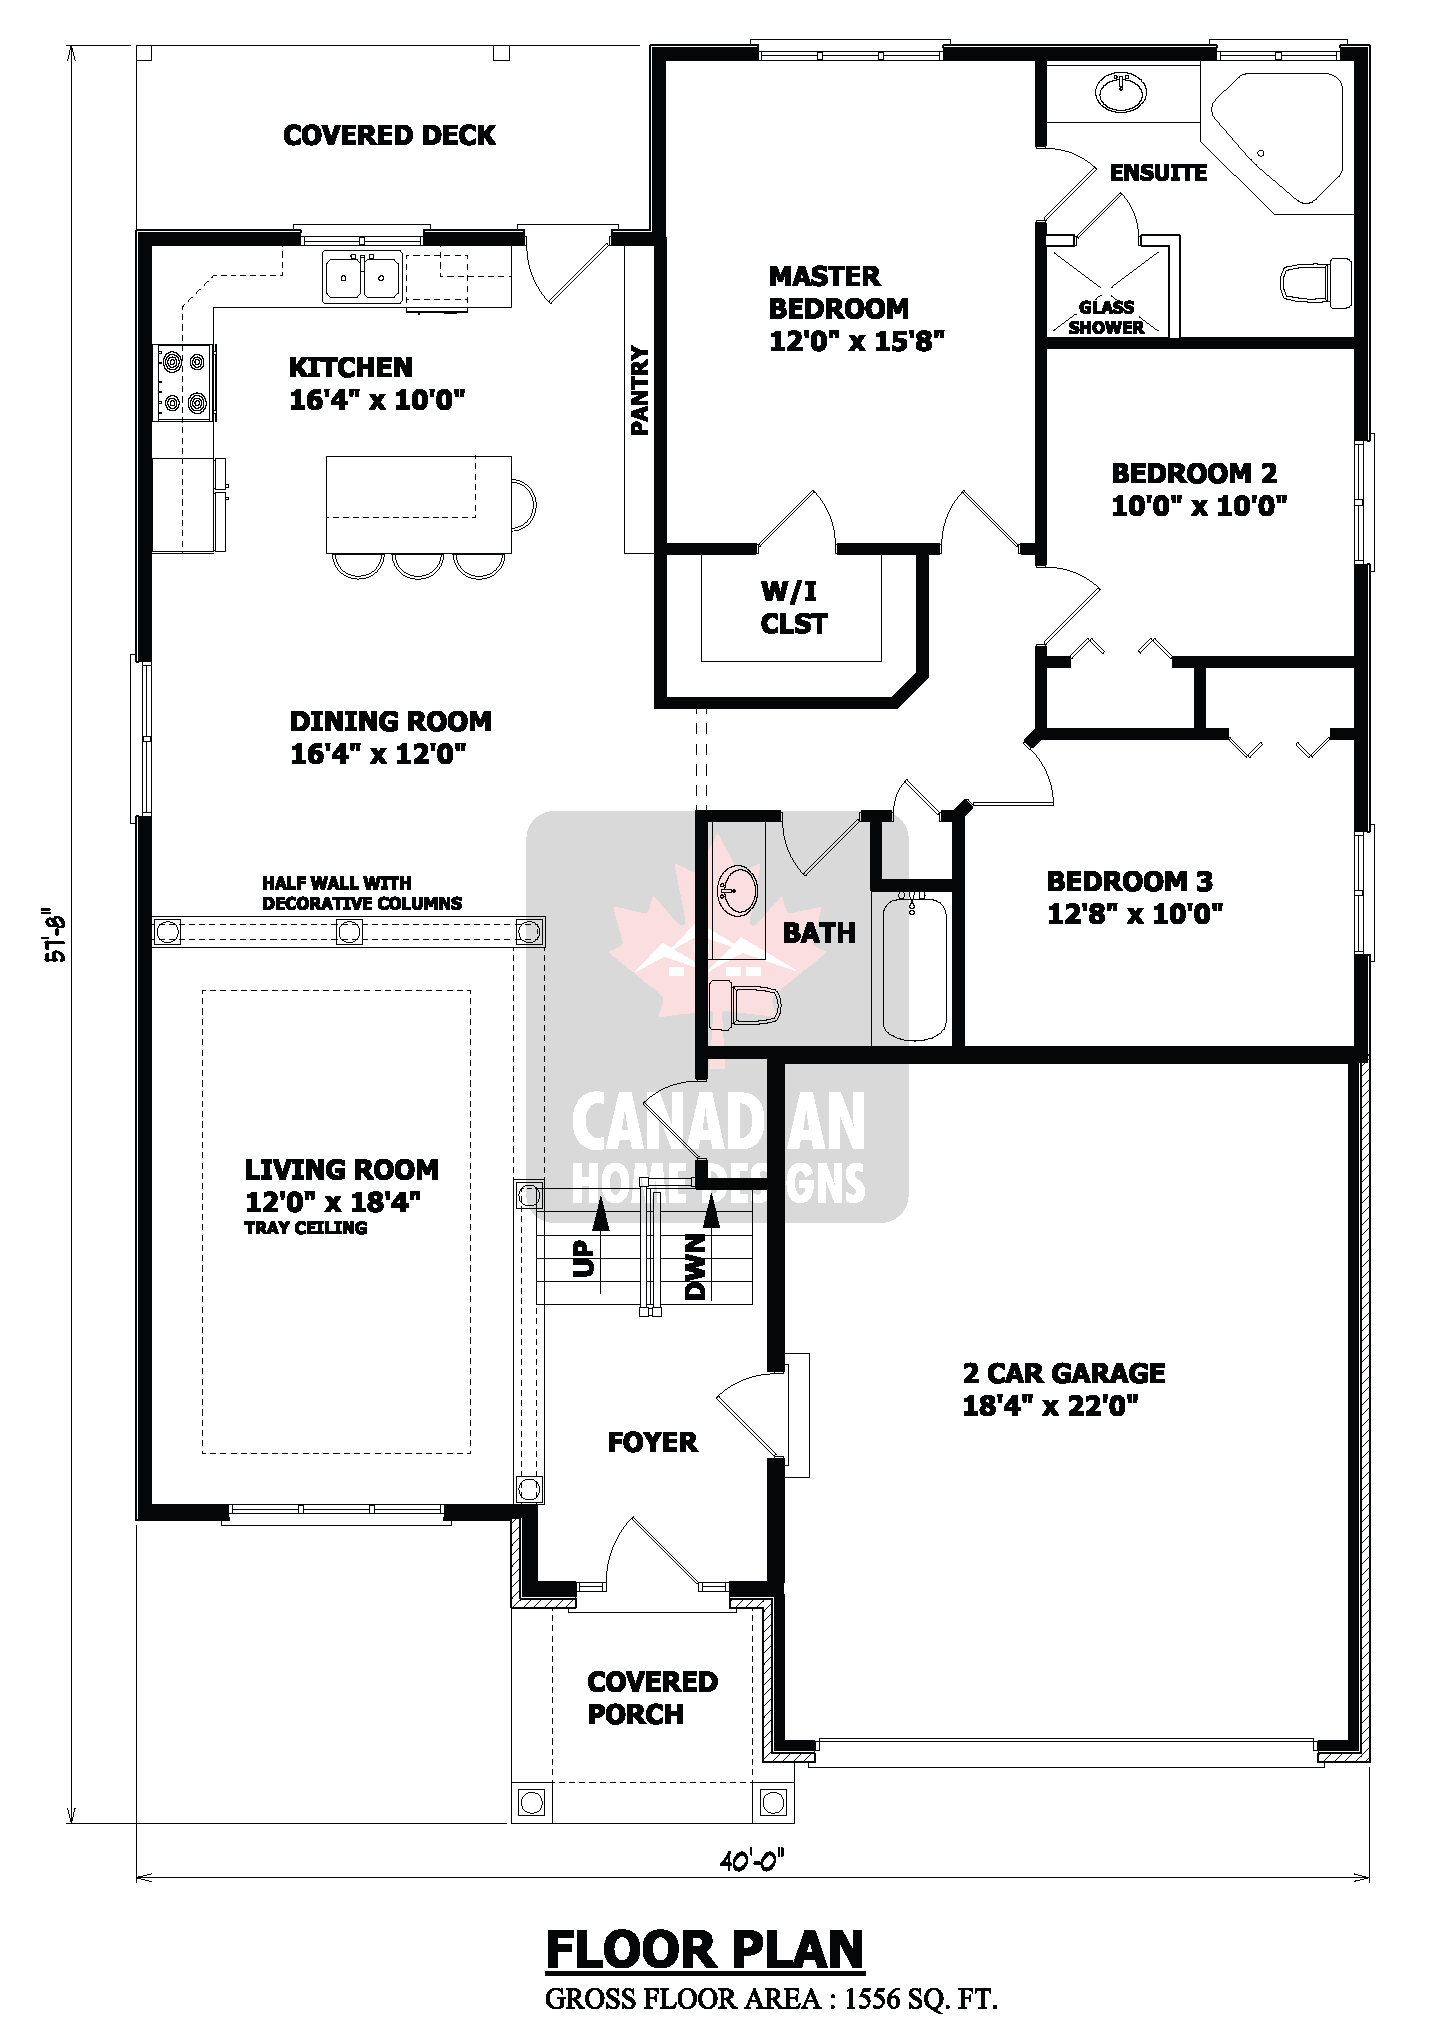 Incredible Tiny House Floor Plans At Dwg Pinterest Small Homes Largest Home Design Picture Inspirations Pitcheantrous